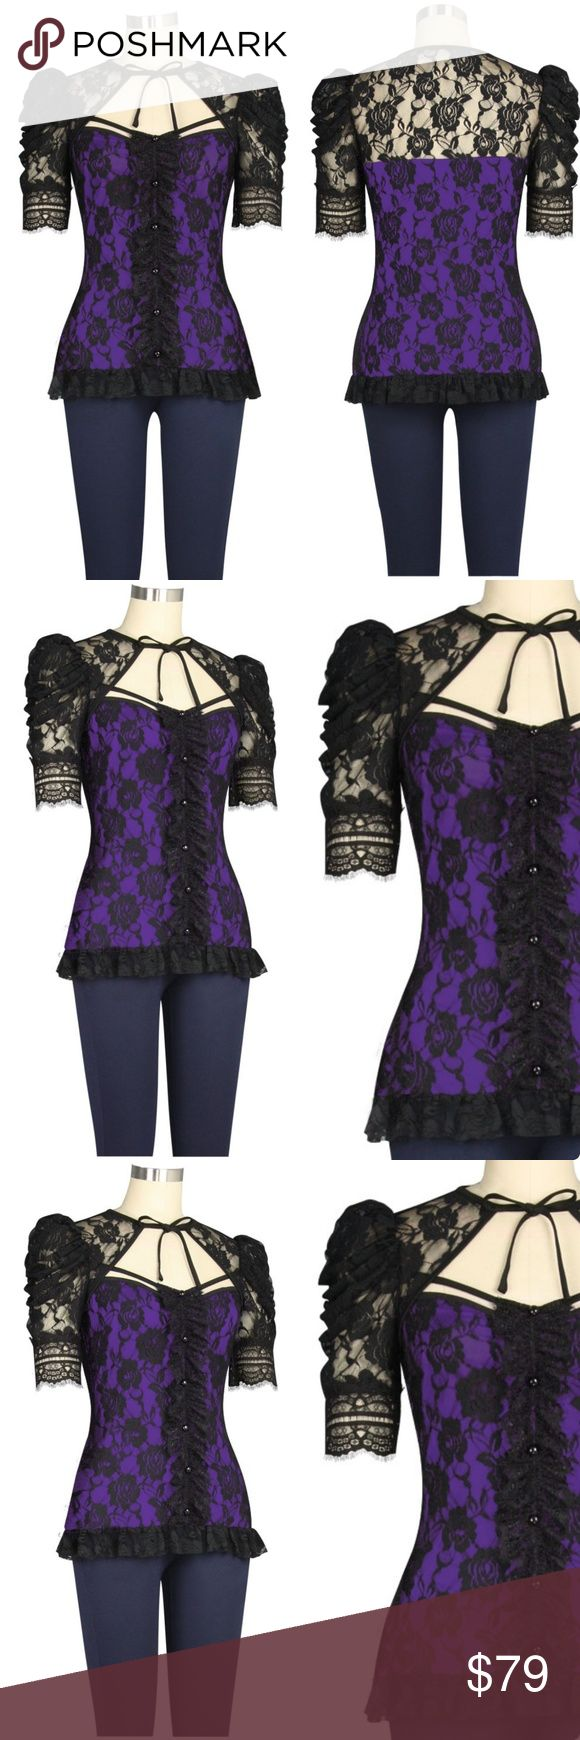 "Lace Steampunk Gothic Clothing Top Shirt Purple New Lace Steampunk Clothing Top   Now Accepting Pre-Orders on this Petticoat! ▶▶▶Delivery 5-12 Days Delivery◀◀◀  This is a private brand also sold at Hot Topic. Not Hot Topic brand itself.  This shirt features a lace outer layer with a jersey lining underneath. Decorative buttons and lace down the front.  Length: 25"" Material: 93% Polyester 7% Spandex Hot Topic Tops"